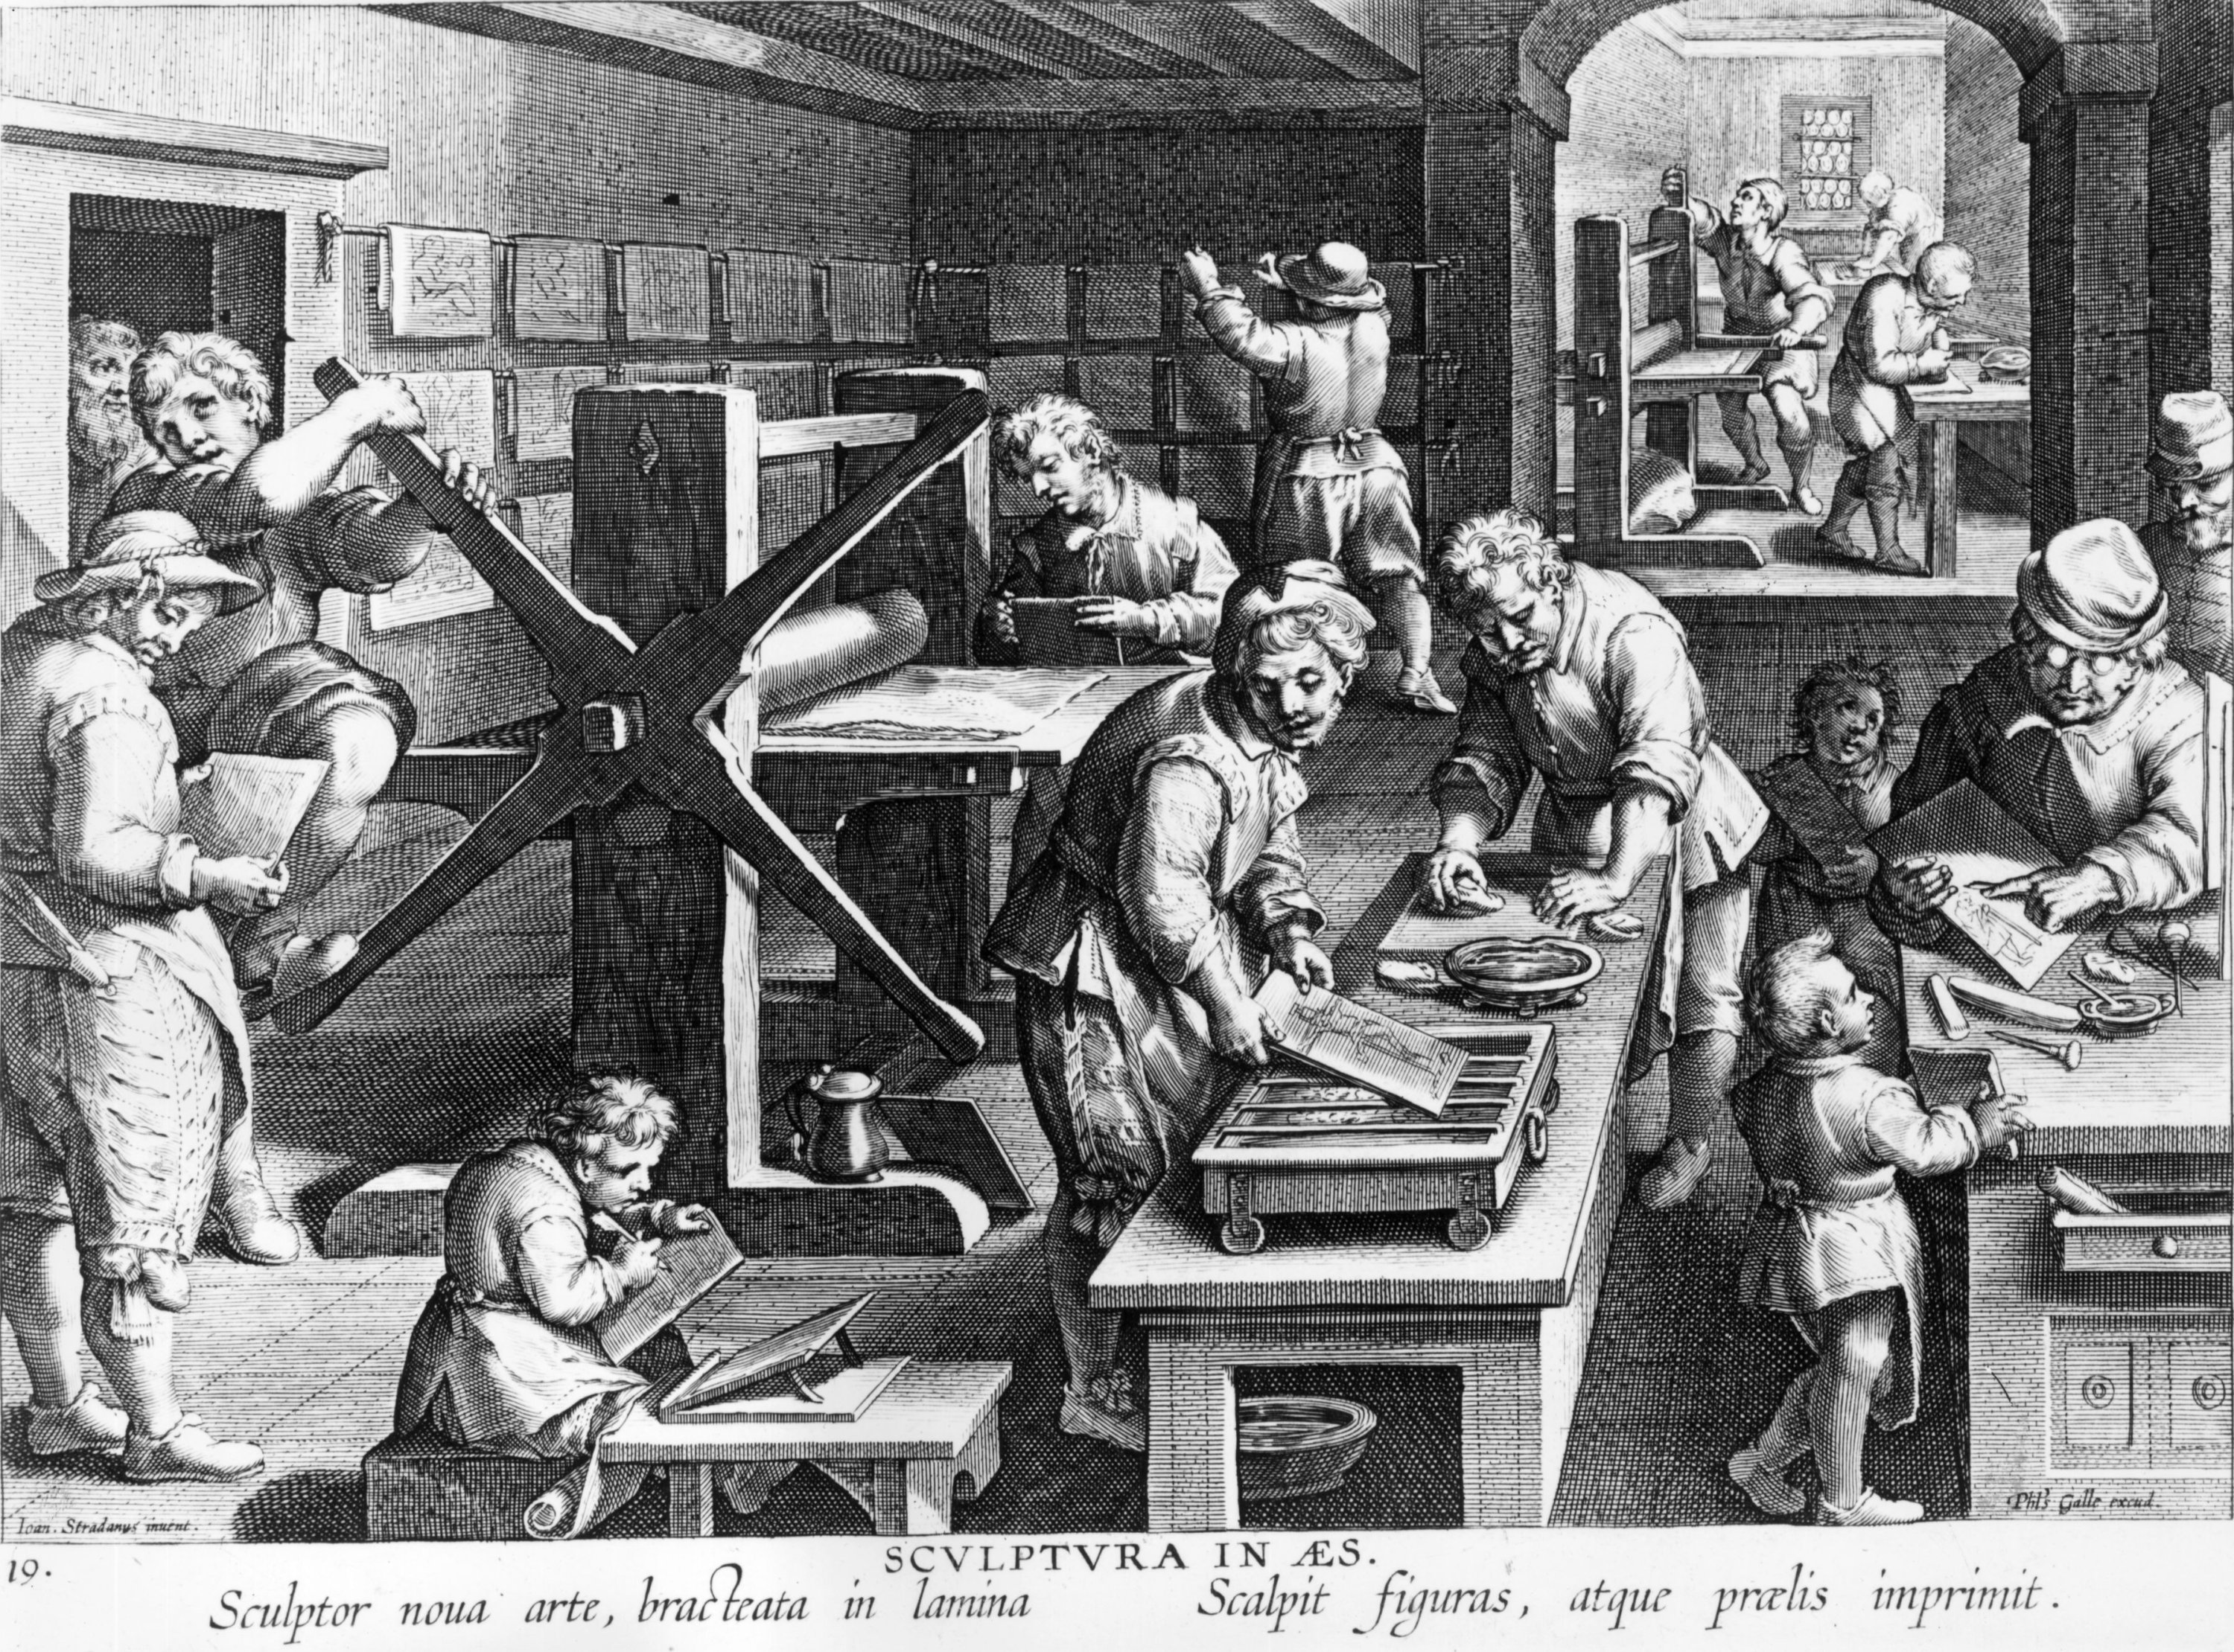 A chaotic early printing room with the large presses dominating the scene circa 1500. (Getty Images)